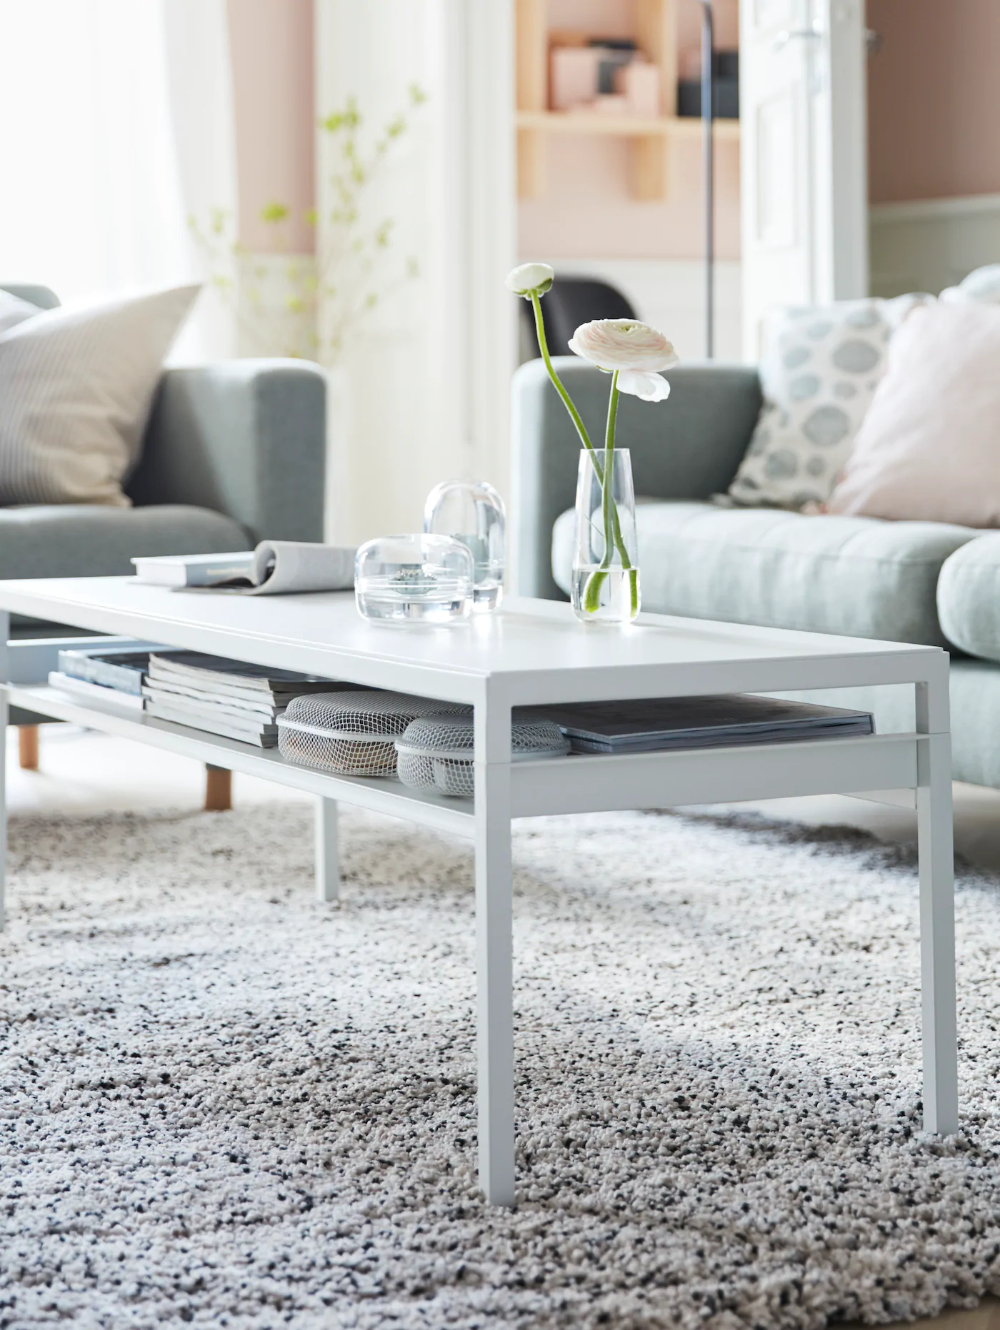 Create a calm oasis in your living room in 2020 | Coffee ...